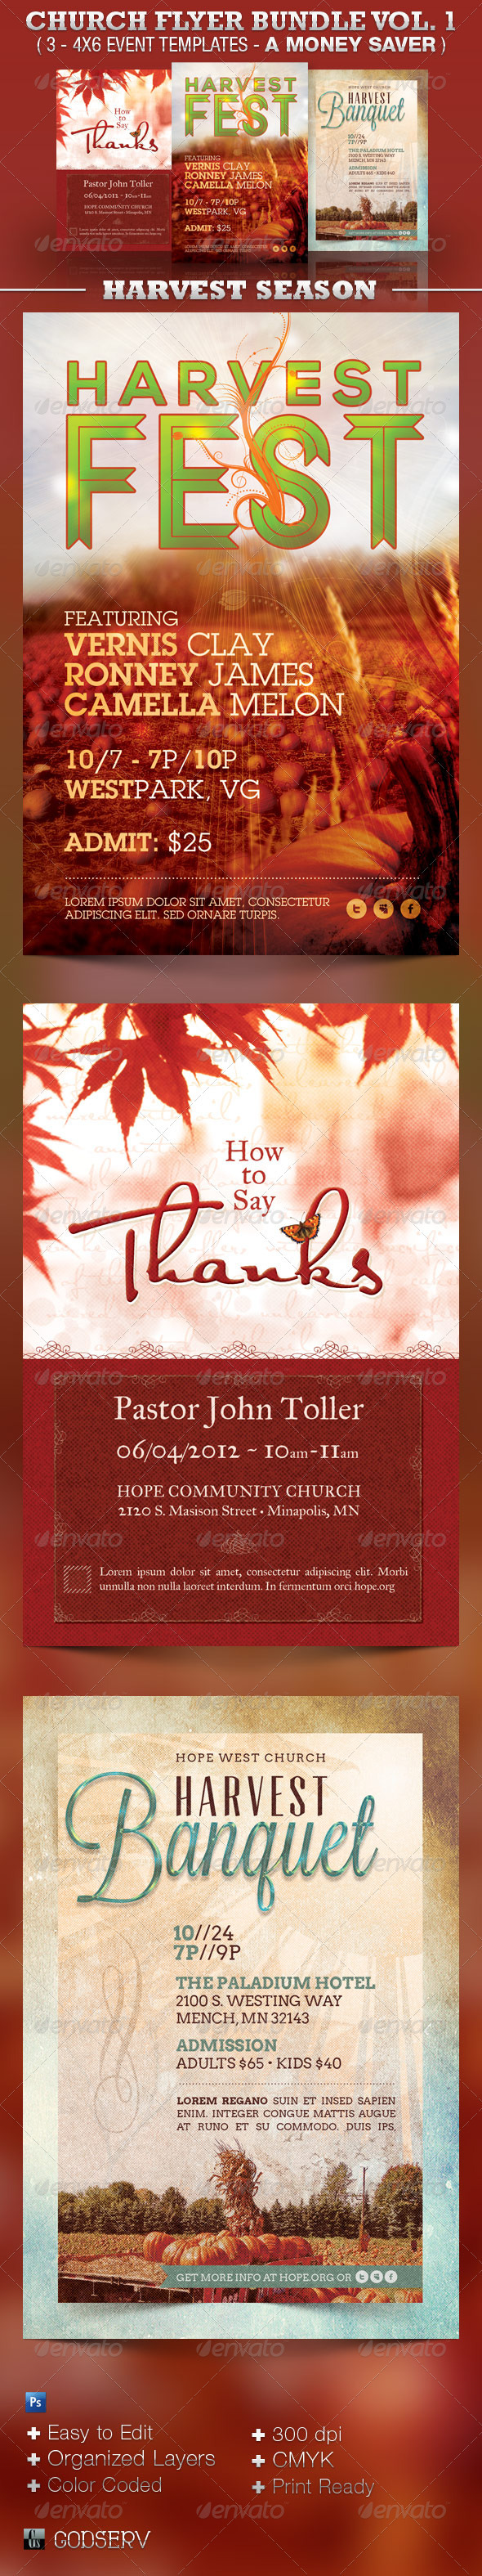 Church Flyer Template Bundle Vol 1 - Harvest - Church Flyers